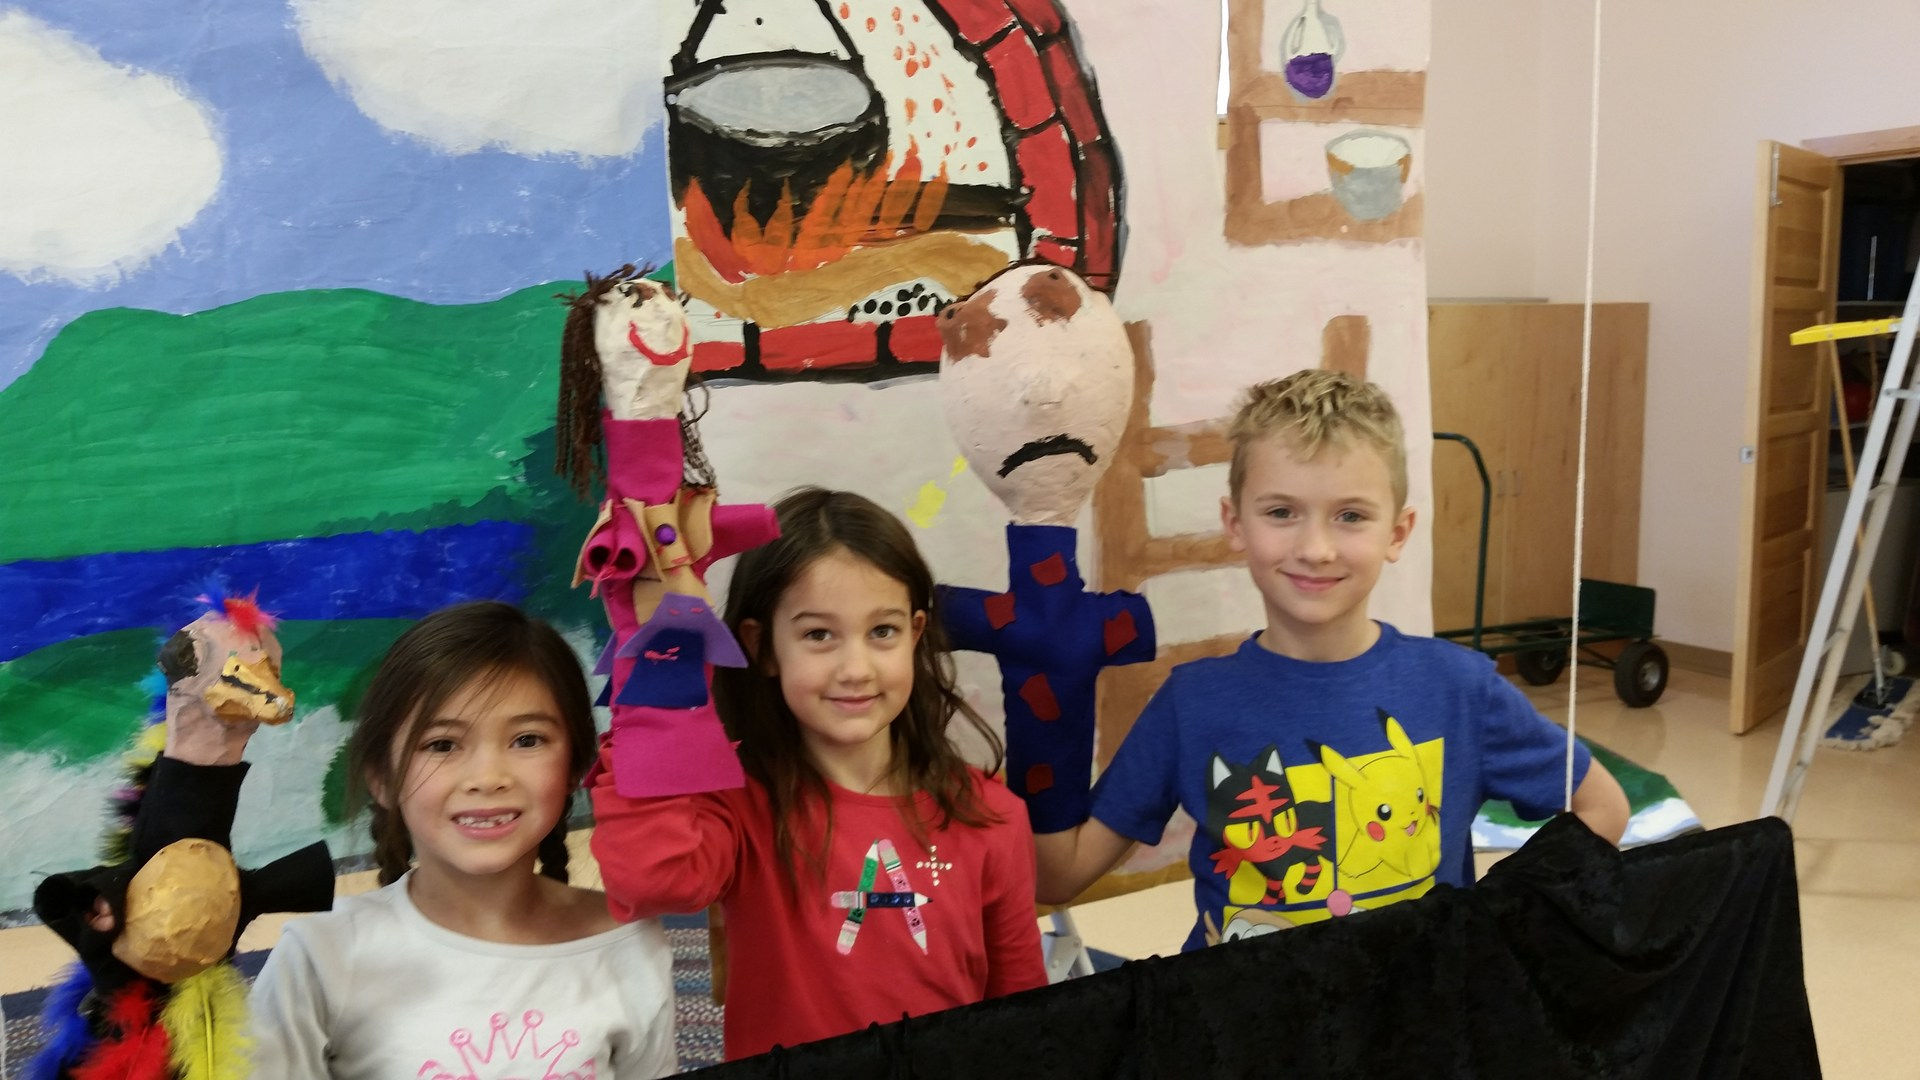 Lower El kids at puppet show